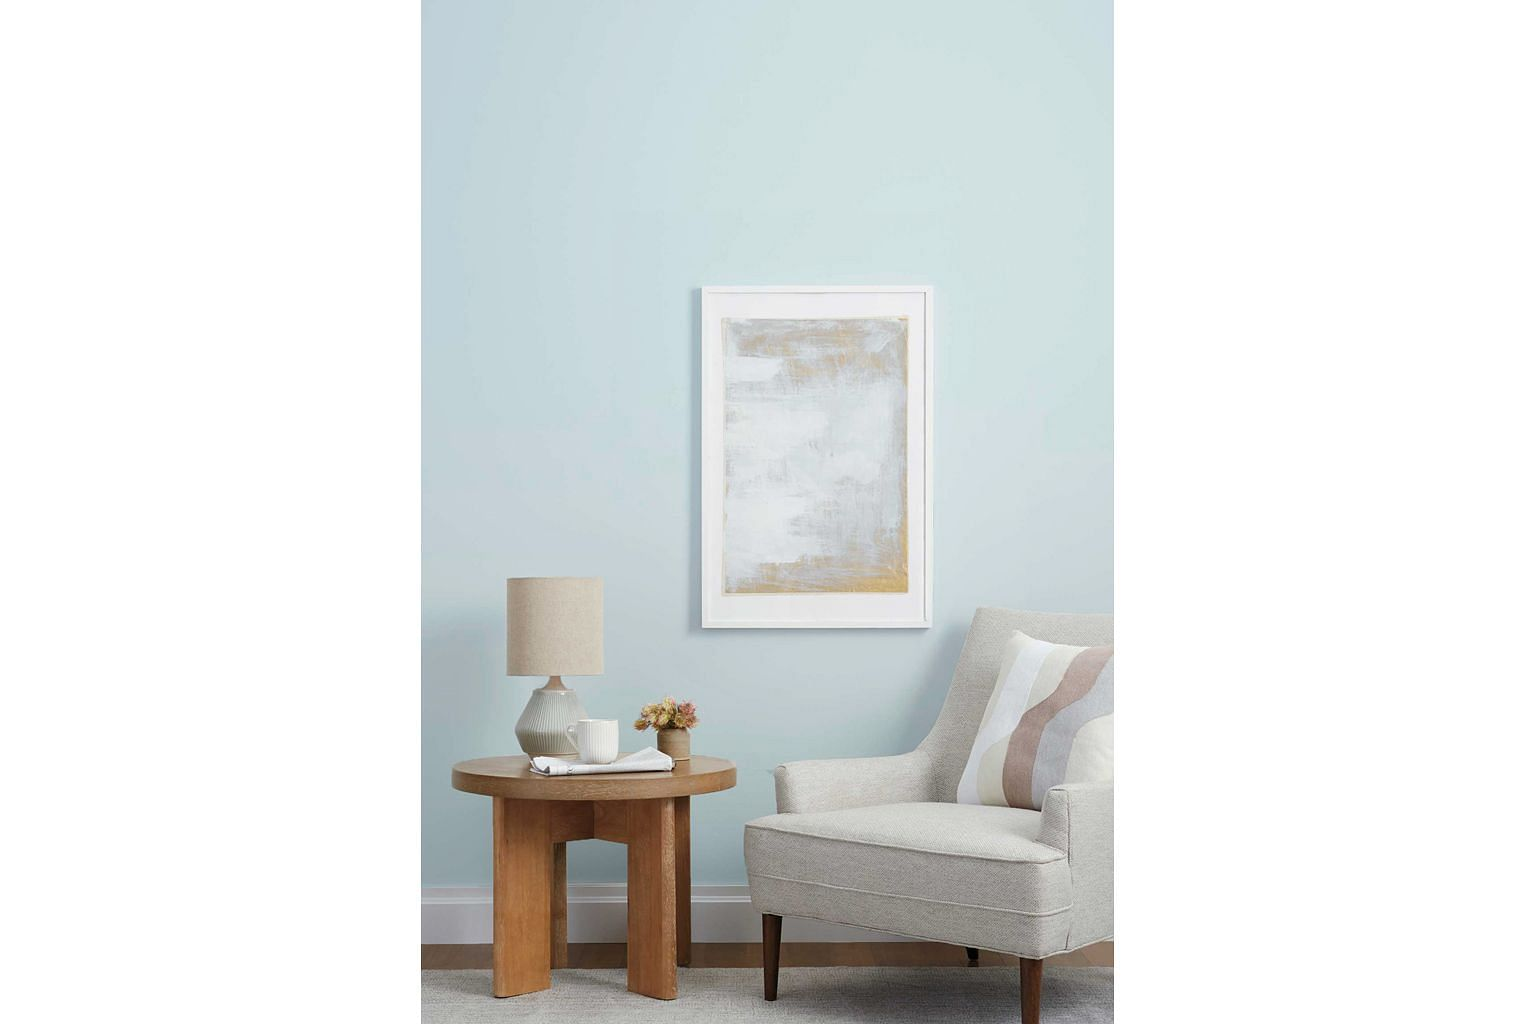 Paint company Clare recently invited fans to choose its new colour. The winner was Frozen, an icy, pale blue that conjures up images of icicles and crisp winter days.